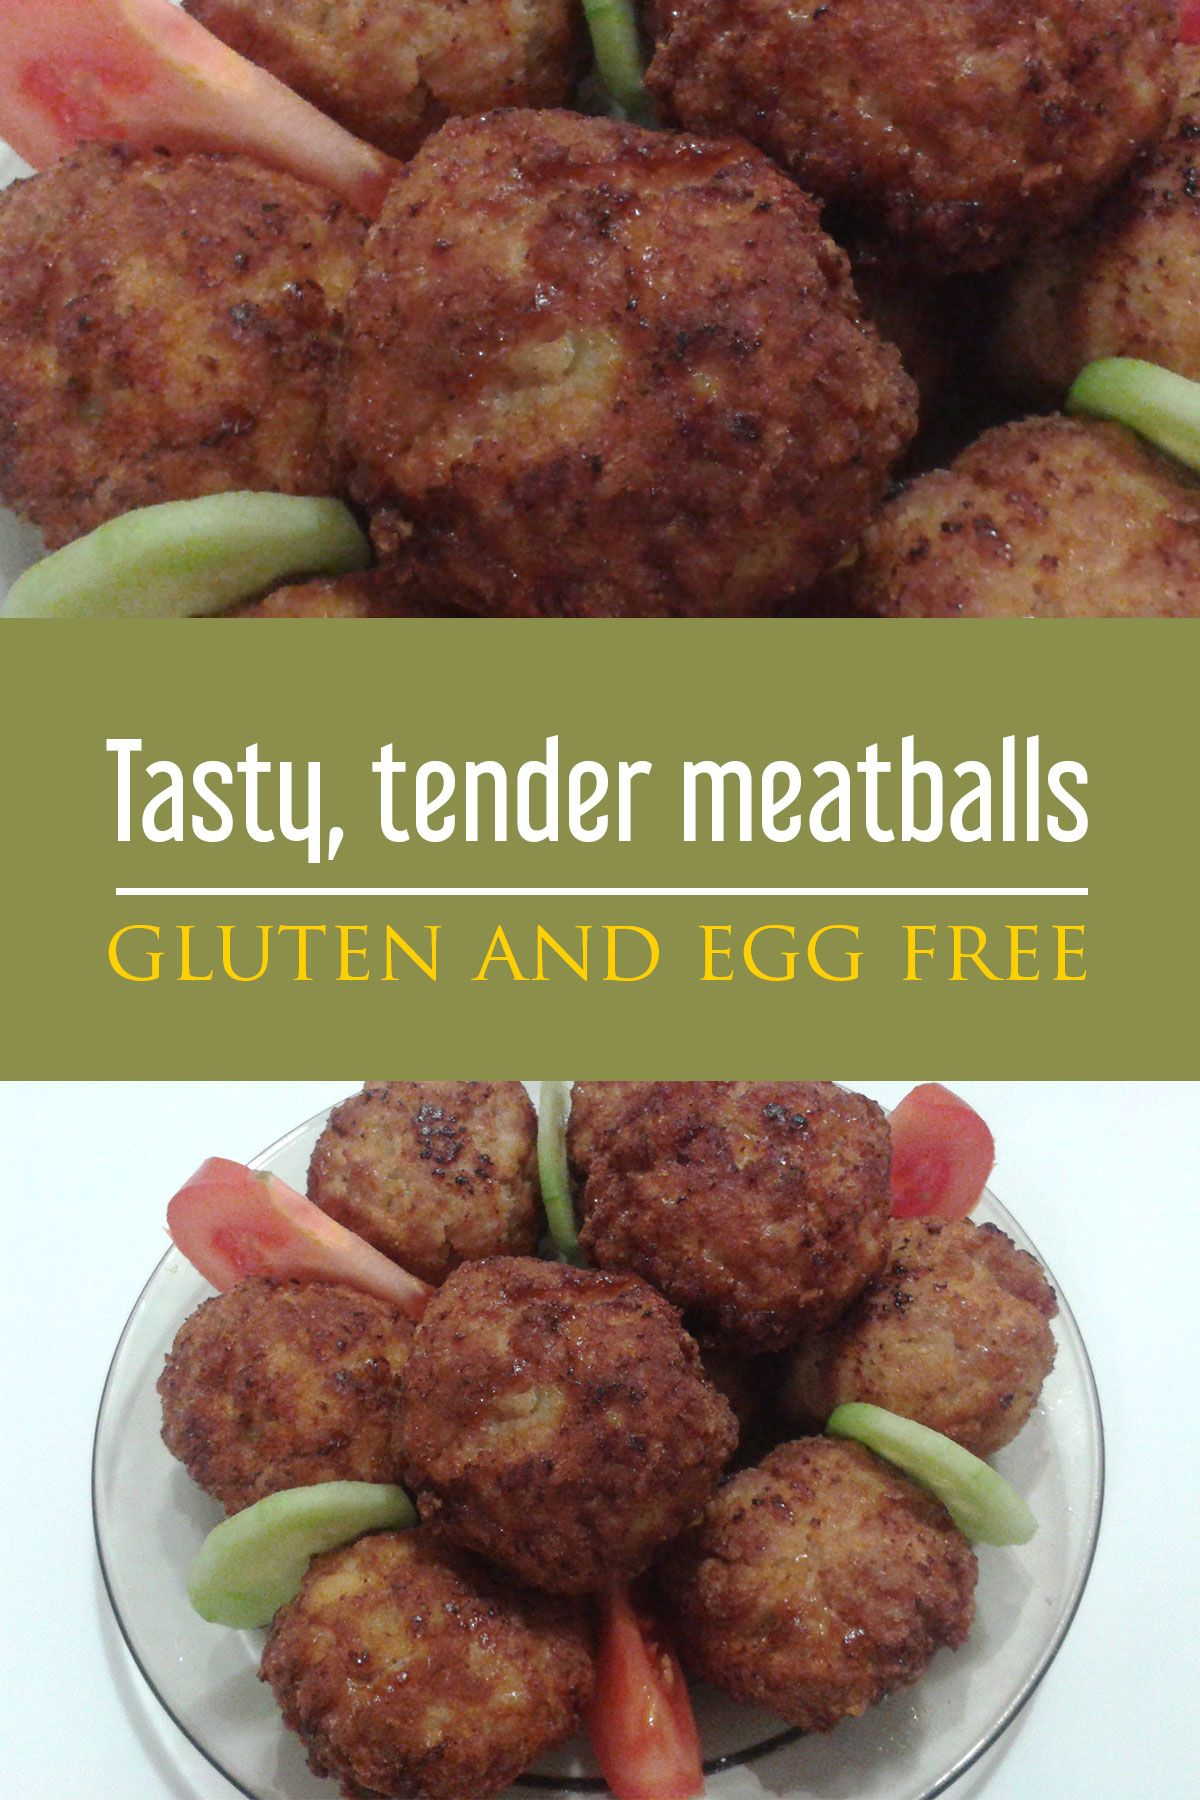 Gluten and egg free meatballs in 2020 meatballs without